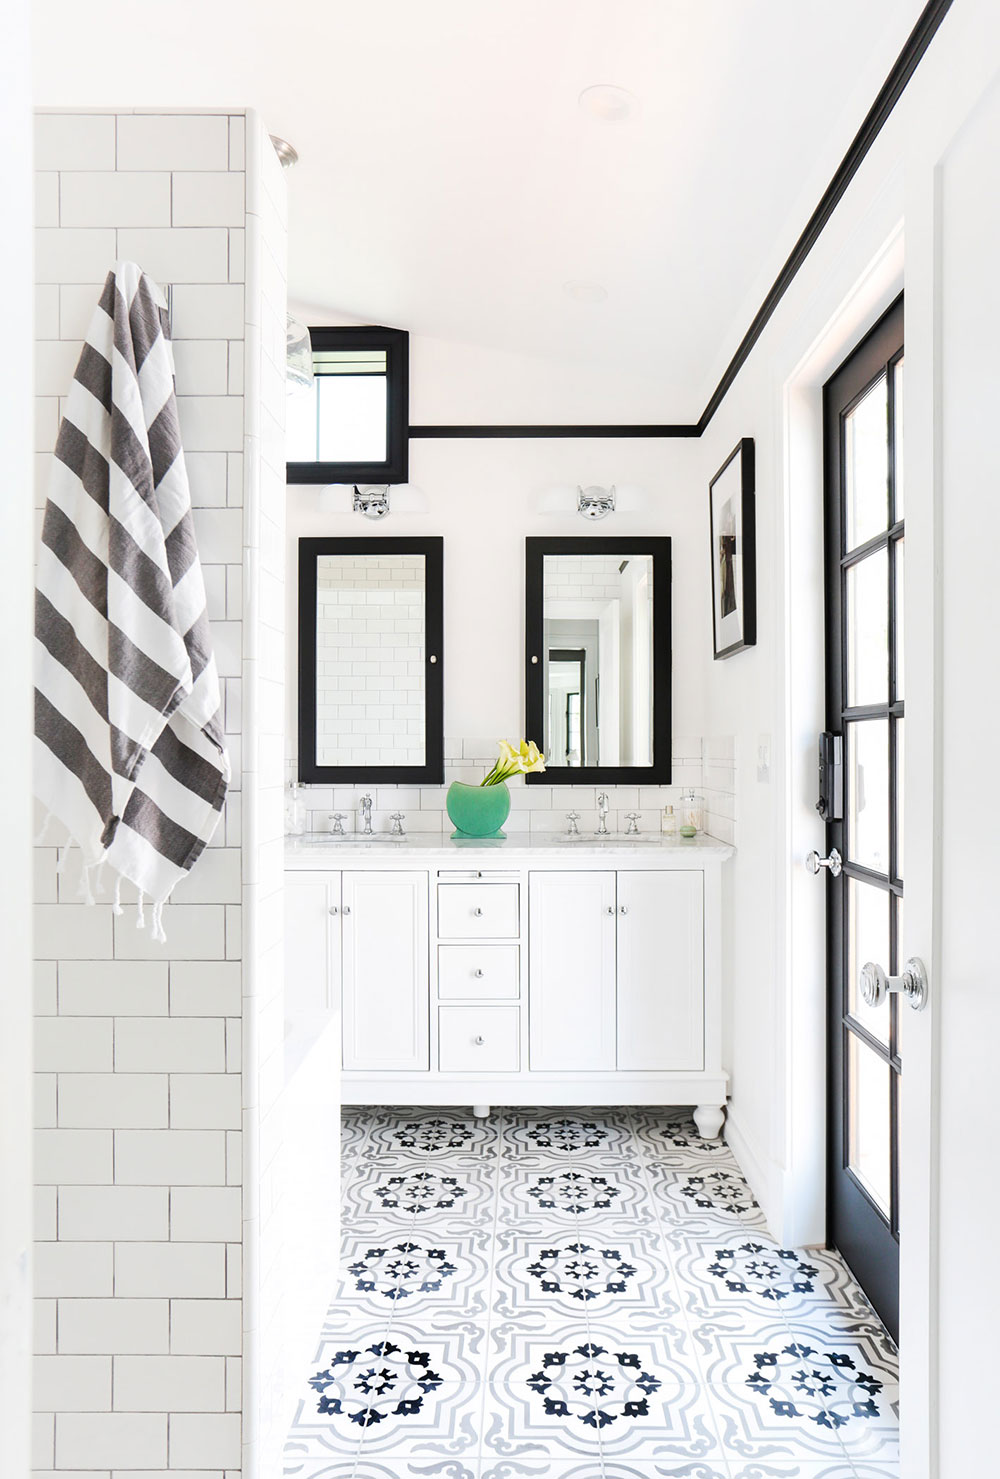 Bathroom Inspiration Trend: Black And White - BY ANABELLE BERNARD FOURNIERWith plenty of white to spare, this black and white bathroom is a light, minimalist design with an especially great flooring choice.To avoid making this room seem small and claustrophobic, the design here is focused on white (and a lot of it!) with black to accentuate mirrors, windows and doors. The touch of color via the flower vase on the countertop is just the perfect amount, and enhances rather than distracts from the overall design.And, of course, the flooring is possibly the best thing about this space. This wonderfully ornamented mosaic tile adds movement and visual interest, and stands in contrast to the more geometrical, minimalist style of the rest of the room.